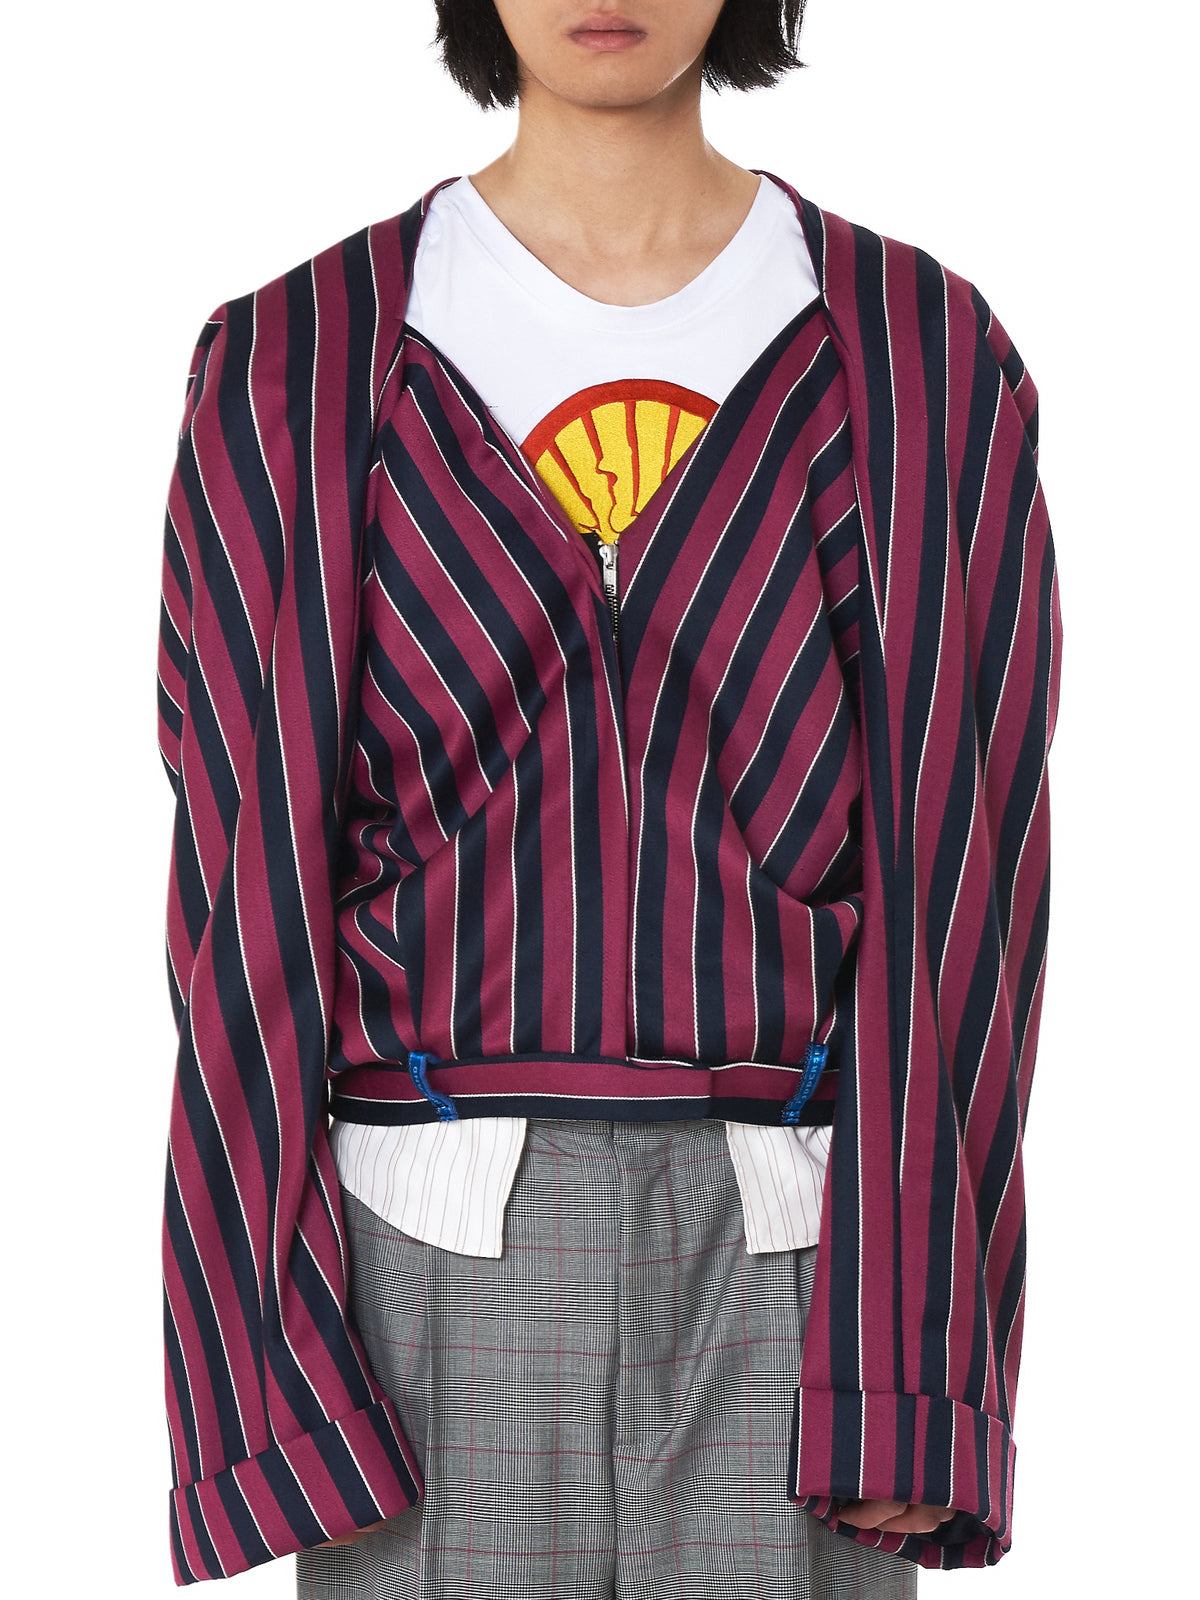 Striped 'Pant' Jacket (PAJCK01-TRSRSJCKT-STRIPED)